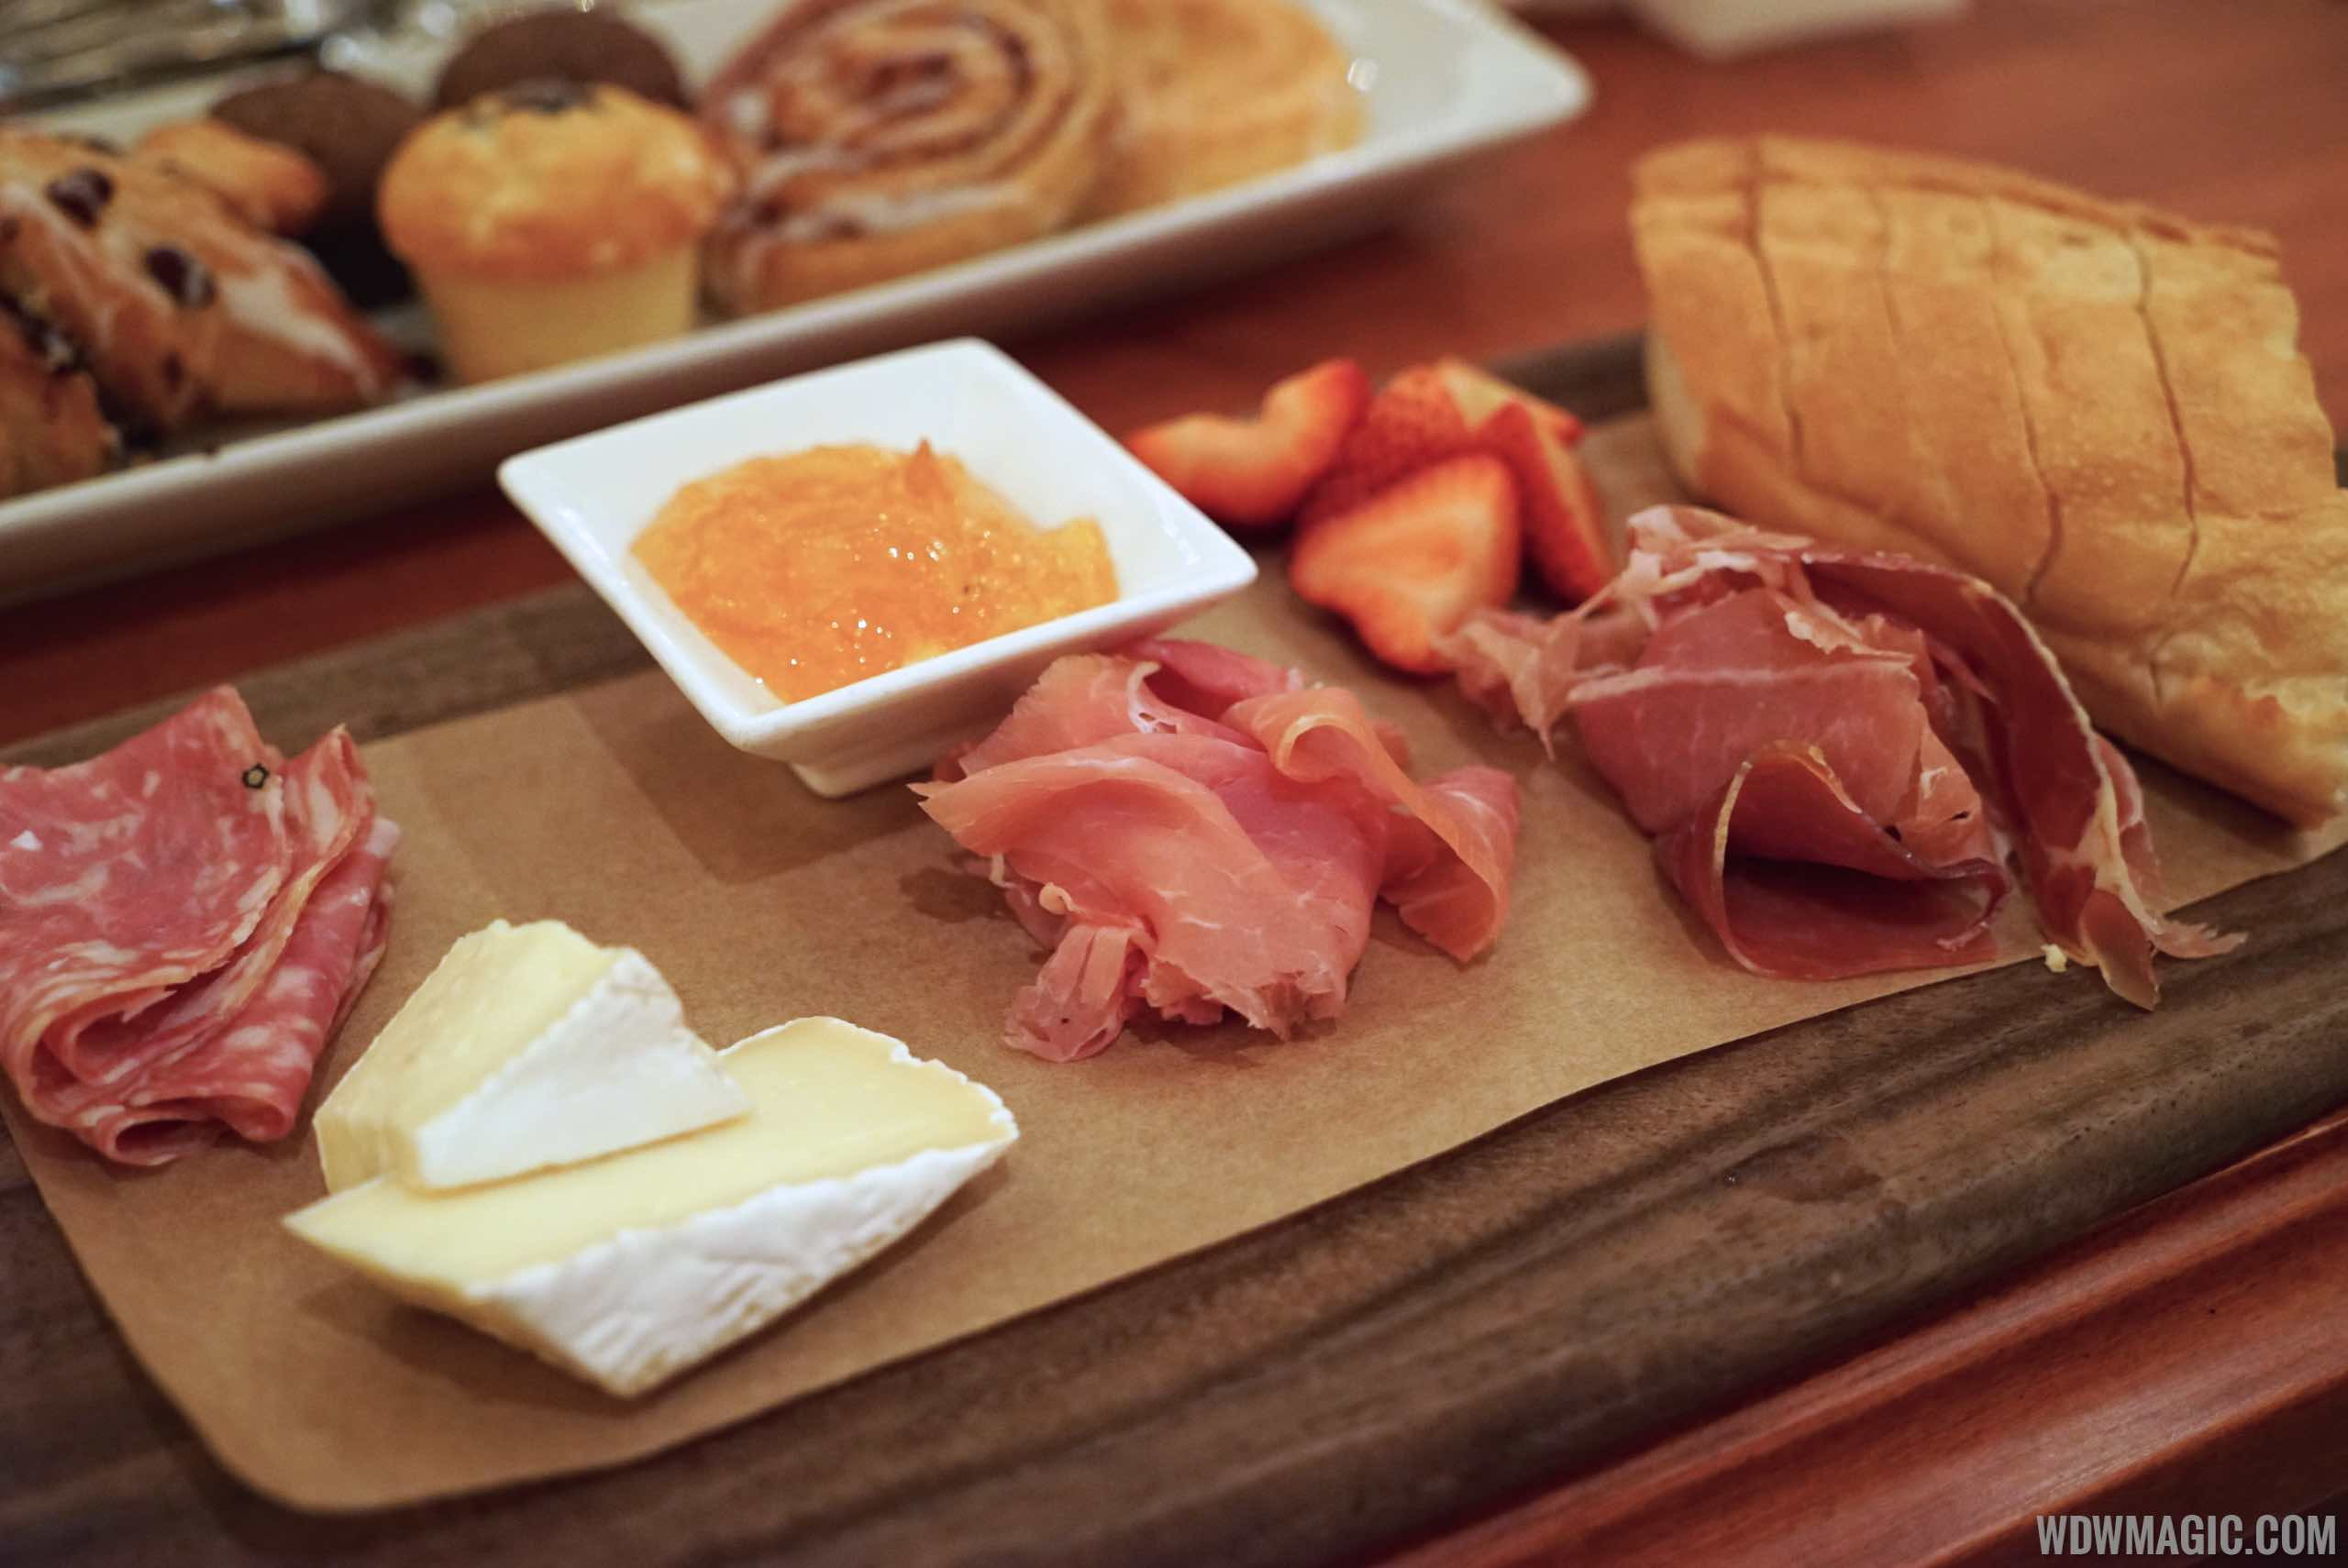 Be Our Guest Restaurant Breakfast - Assorted Meats and Cheese